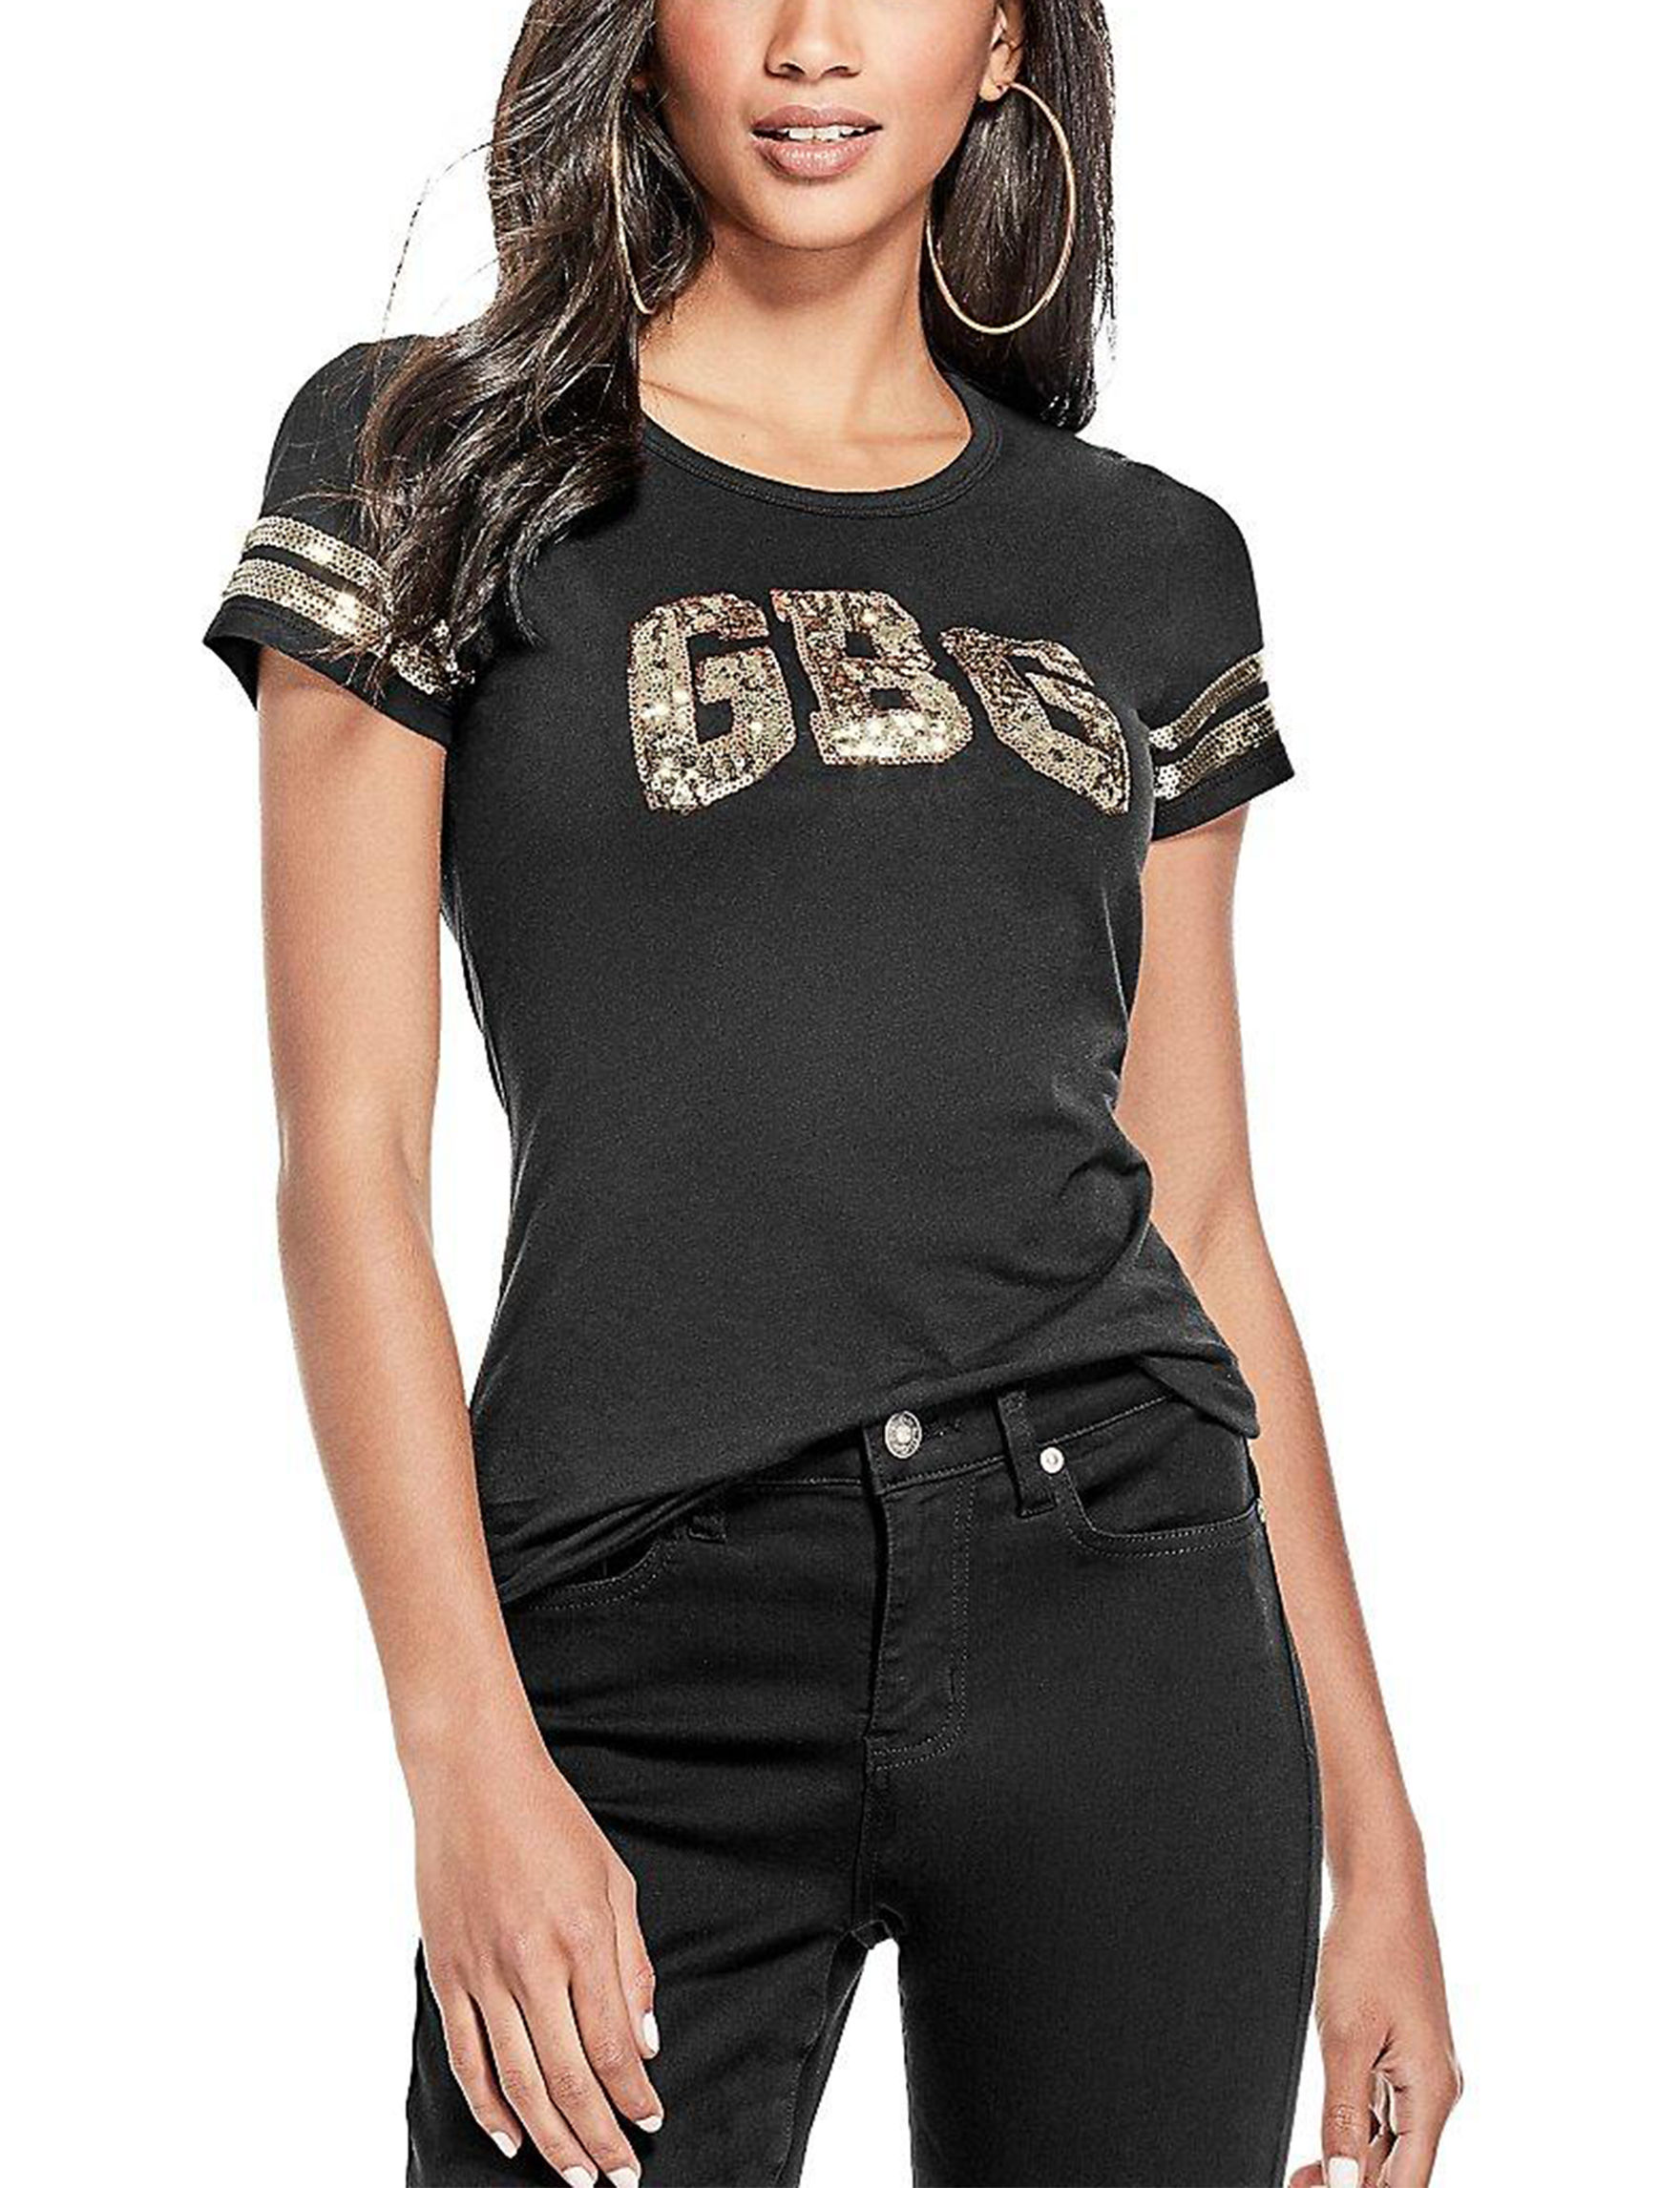 G by Guess Black Shirts & Blouses Tees & Tanks